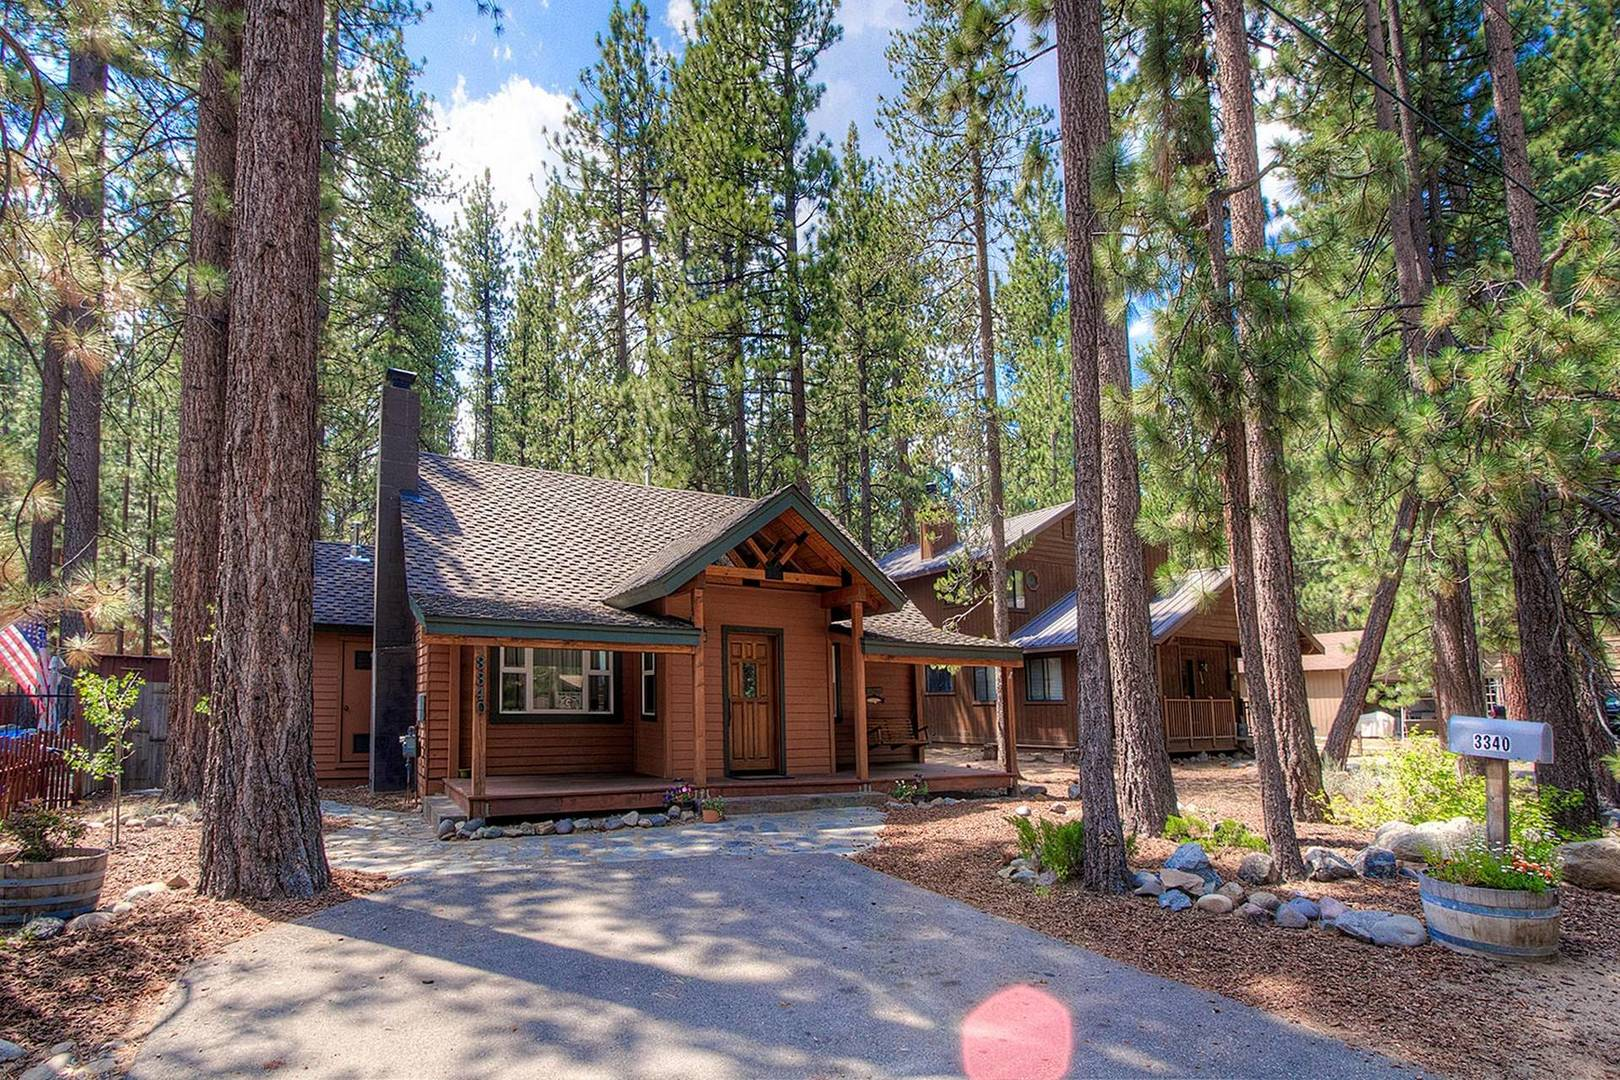 cyh0840 lake tahoe vacation rental